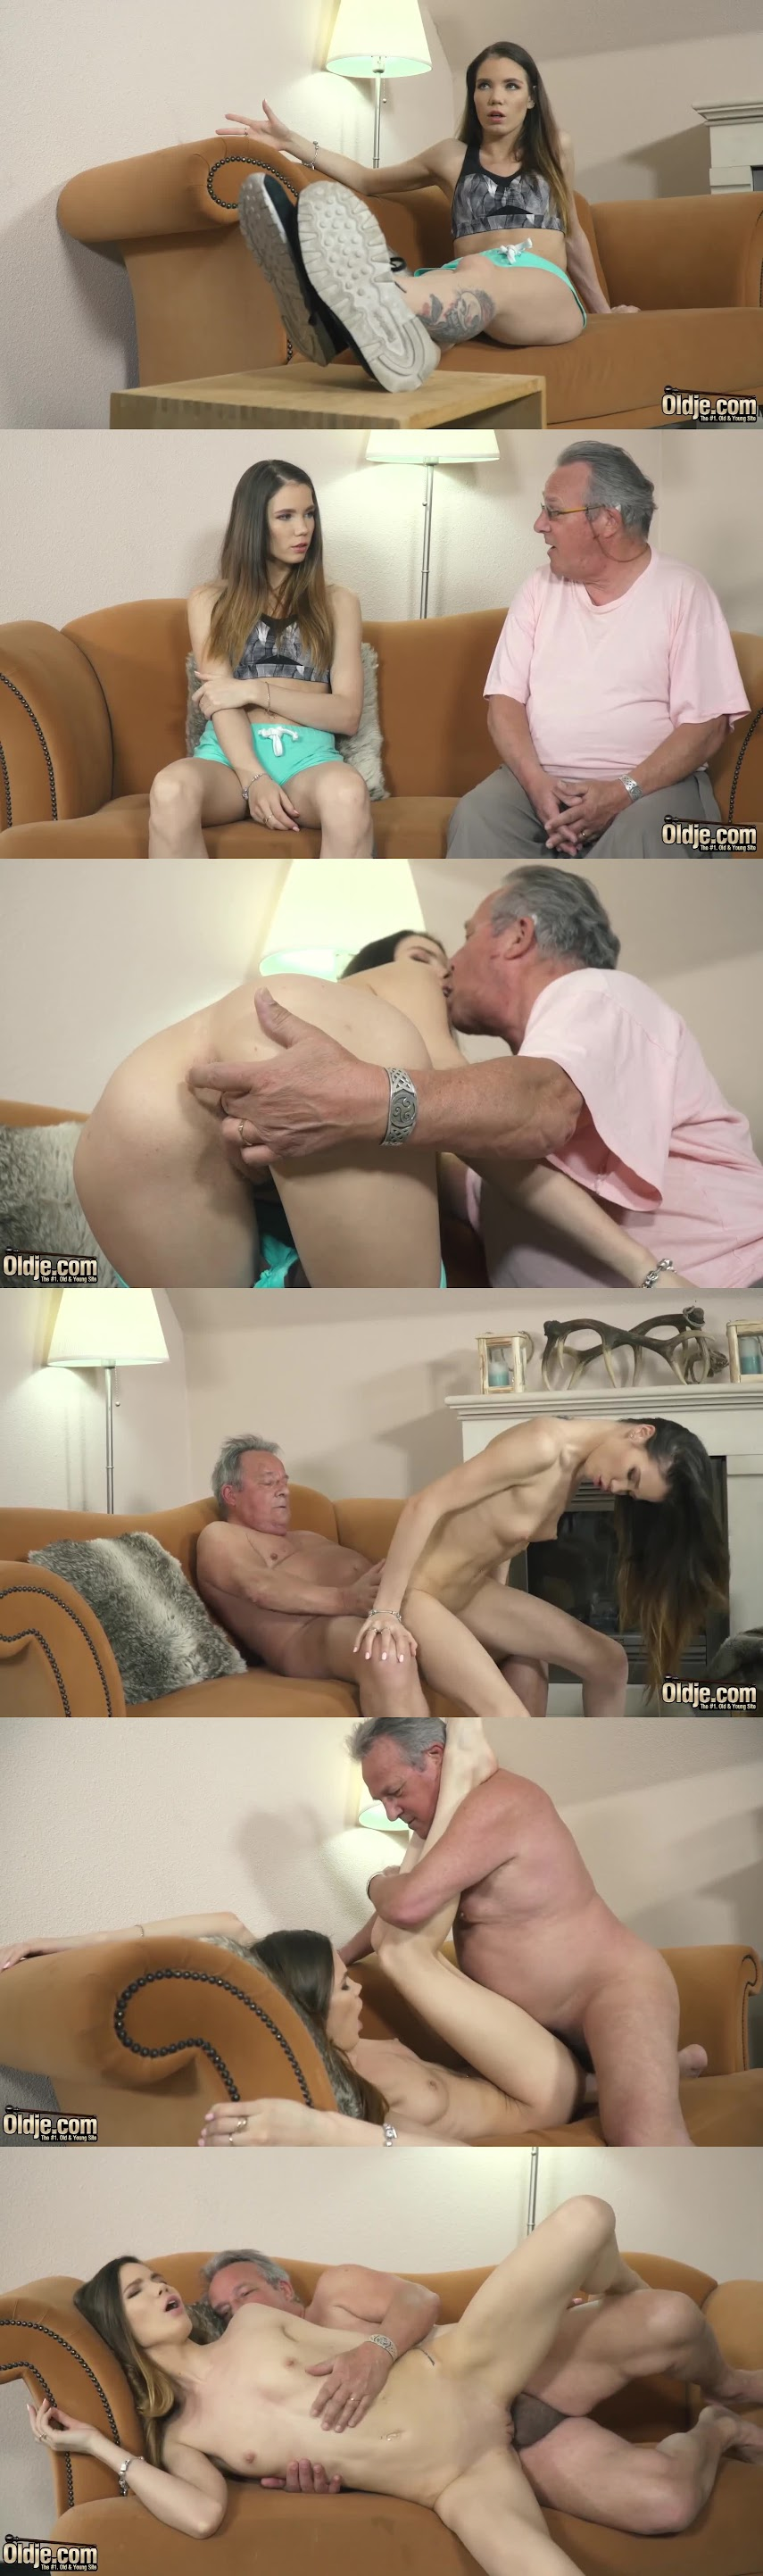 Old-Young Episode 709 Giving You More Lovenia Lux